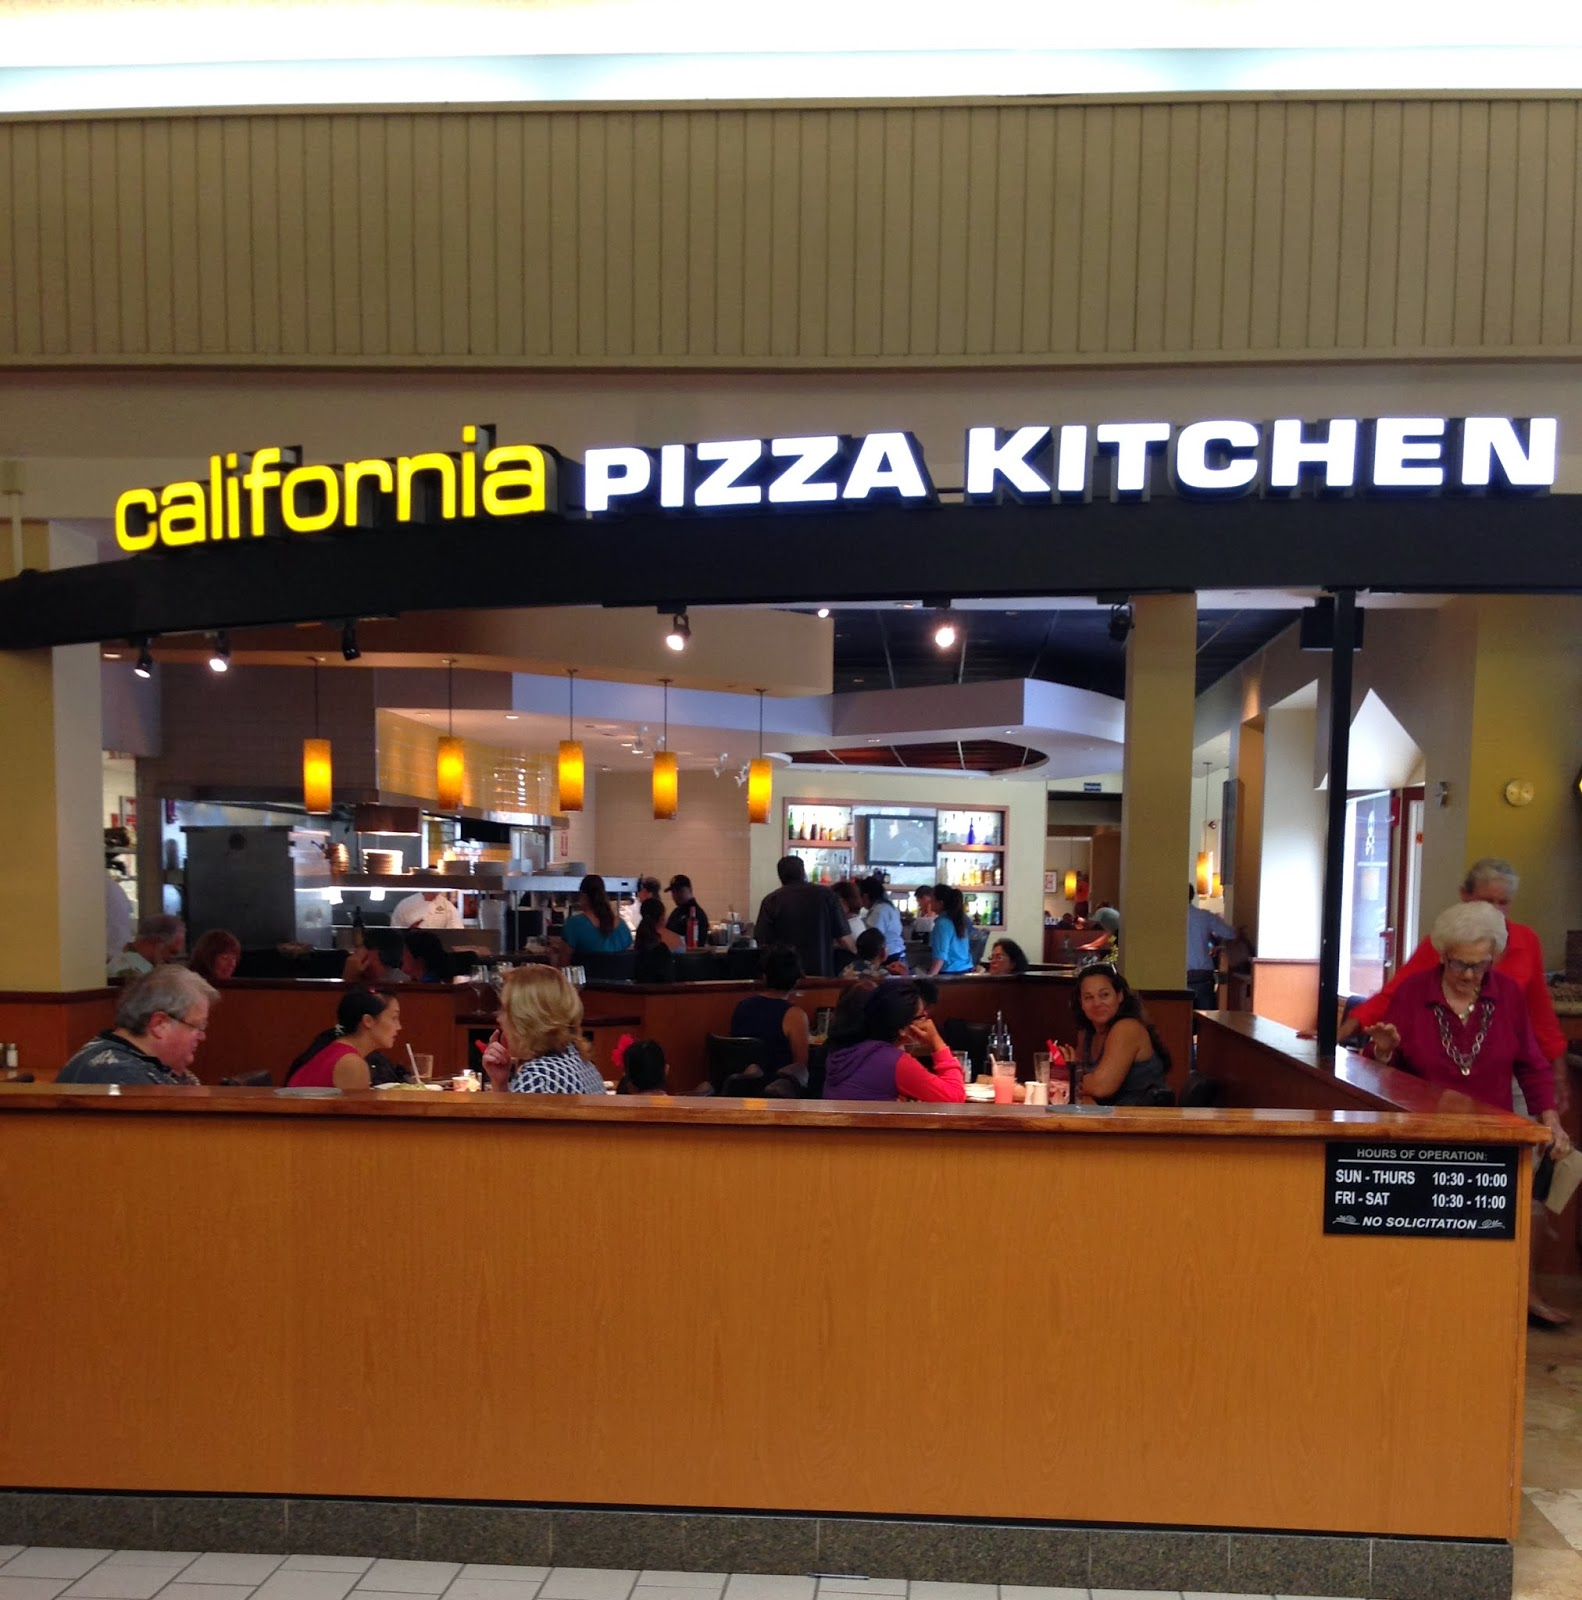 Taste Of Hawaii California Pizza Kitchen  Revisited Again. Kitchen Garden Design. Kitchen Design Decor. Casual Kitchen Design. Kitchen Designers San Diego. Kitchen Cabinets Design Ideas Photos. Recessed Lighting Kitchen Design. Kitchen Layout Design Software. Vintage Kitchen Designs